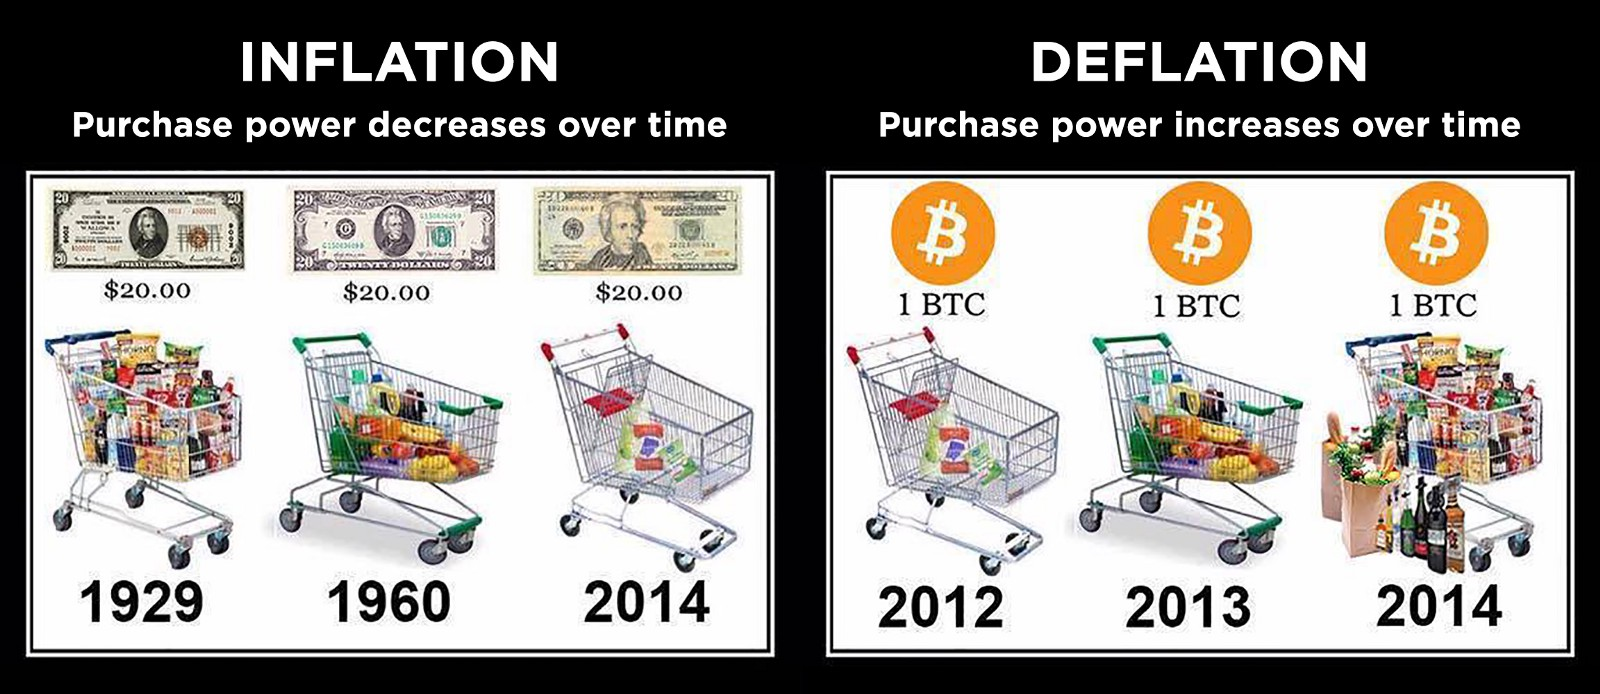 This Limited Supply Makes Bitcoin A Deflationary Currency Meaning Compared To Fiat Money It Gains Value Over Time For People In Countries Like Zimbabwe